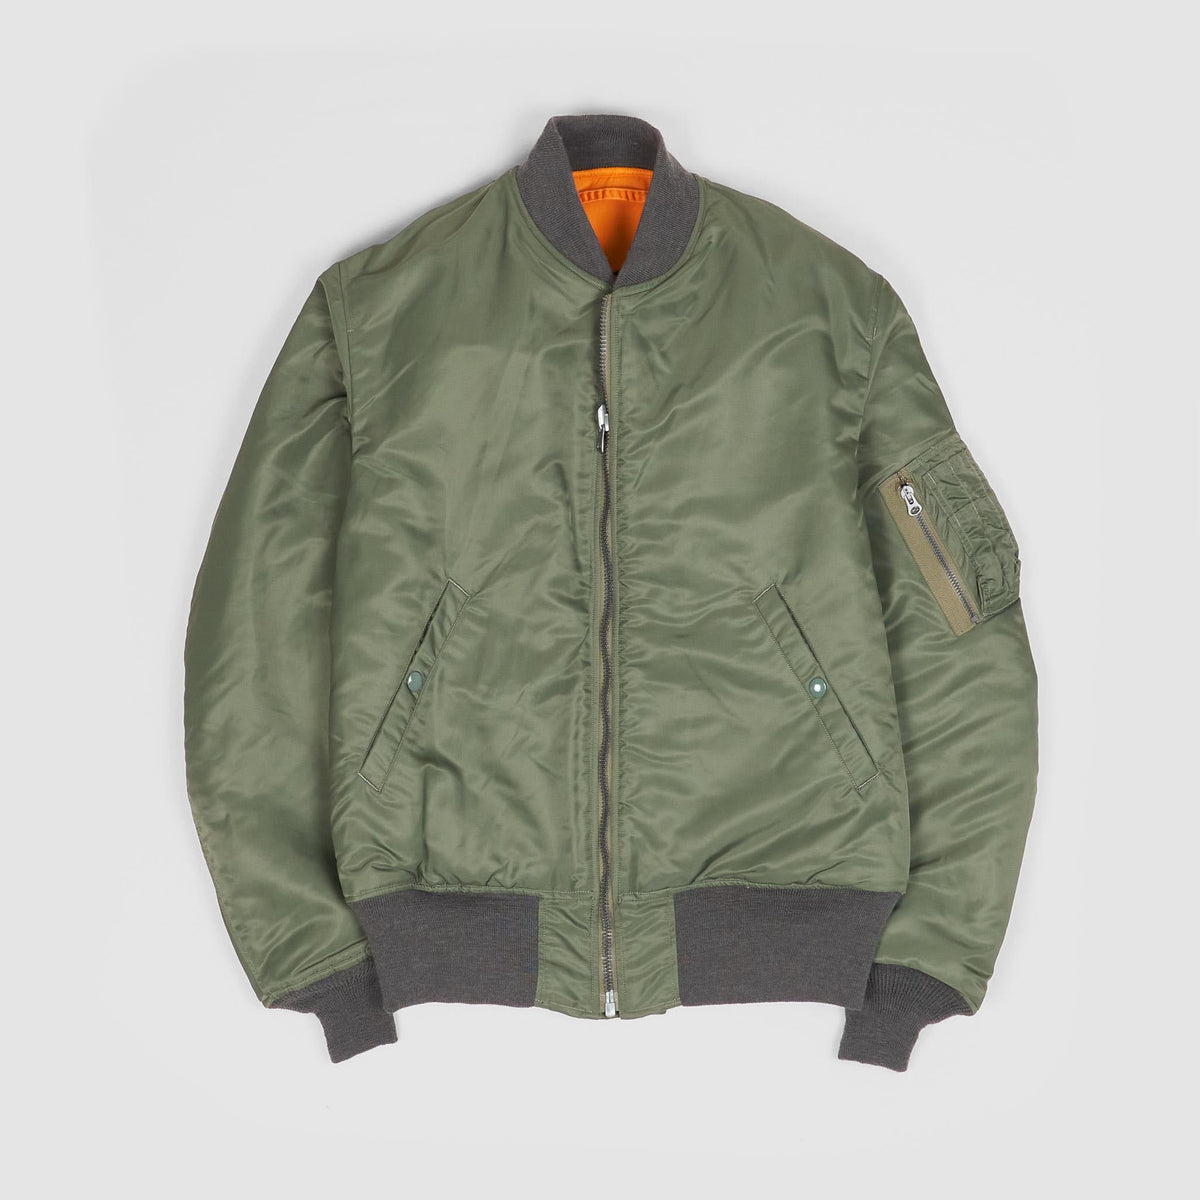 Buzz Rickson's MA-1 D-Type Reversible Flight Jacket